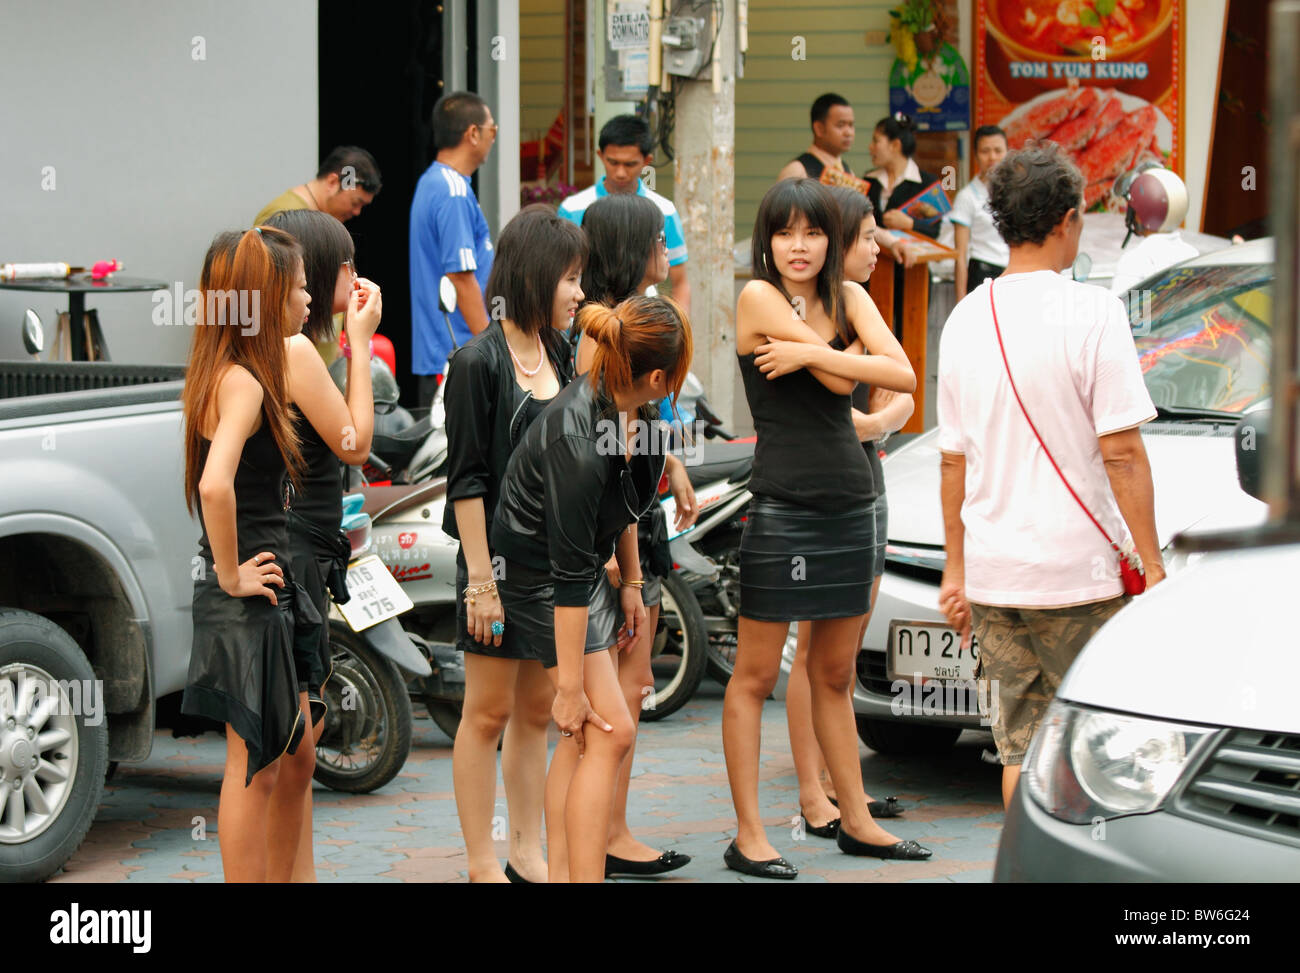 Black color dressed young Thai girls calling customers in in the front of a bar - night club Pattaya Thailand October 2010 & Black color dressed young Thai girls calling customers in in the ...